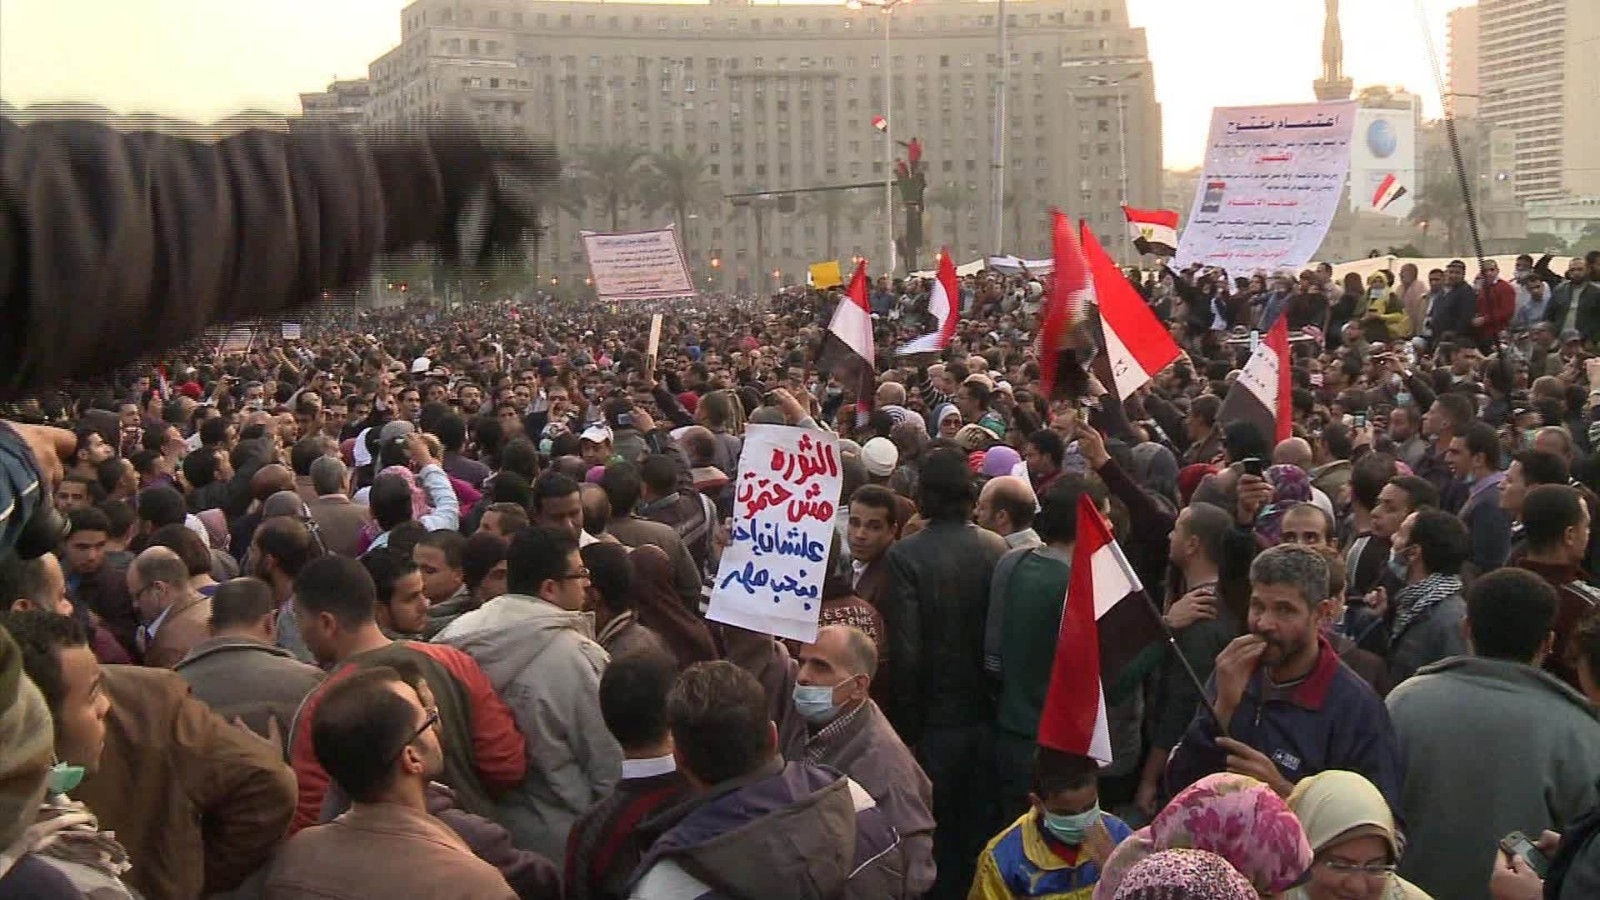 Five years after the Egyptian revolution, police brutality persists